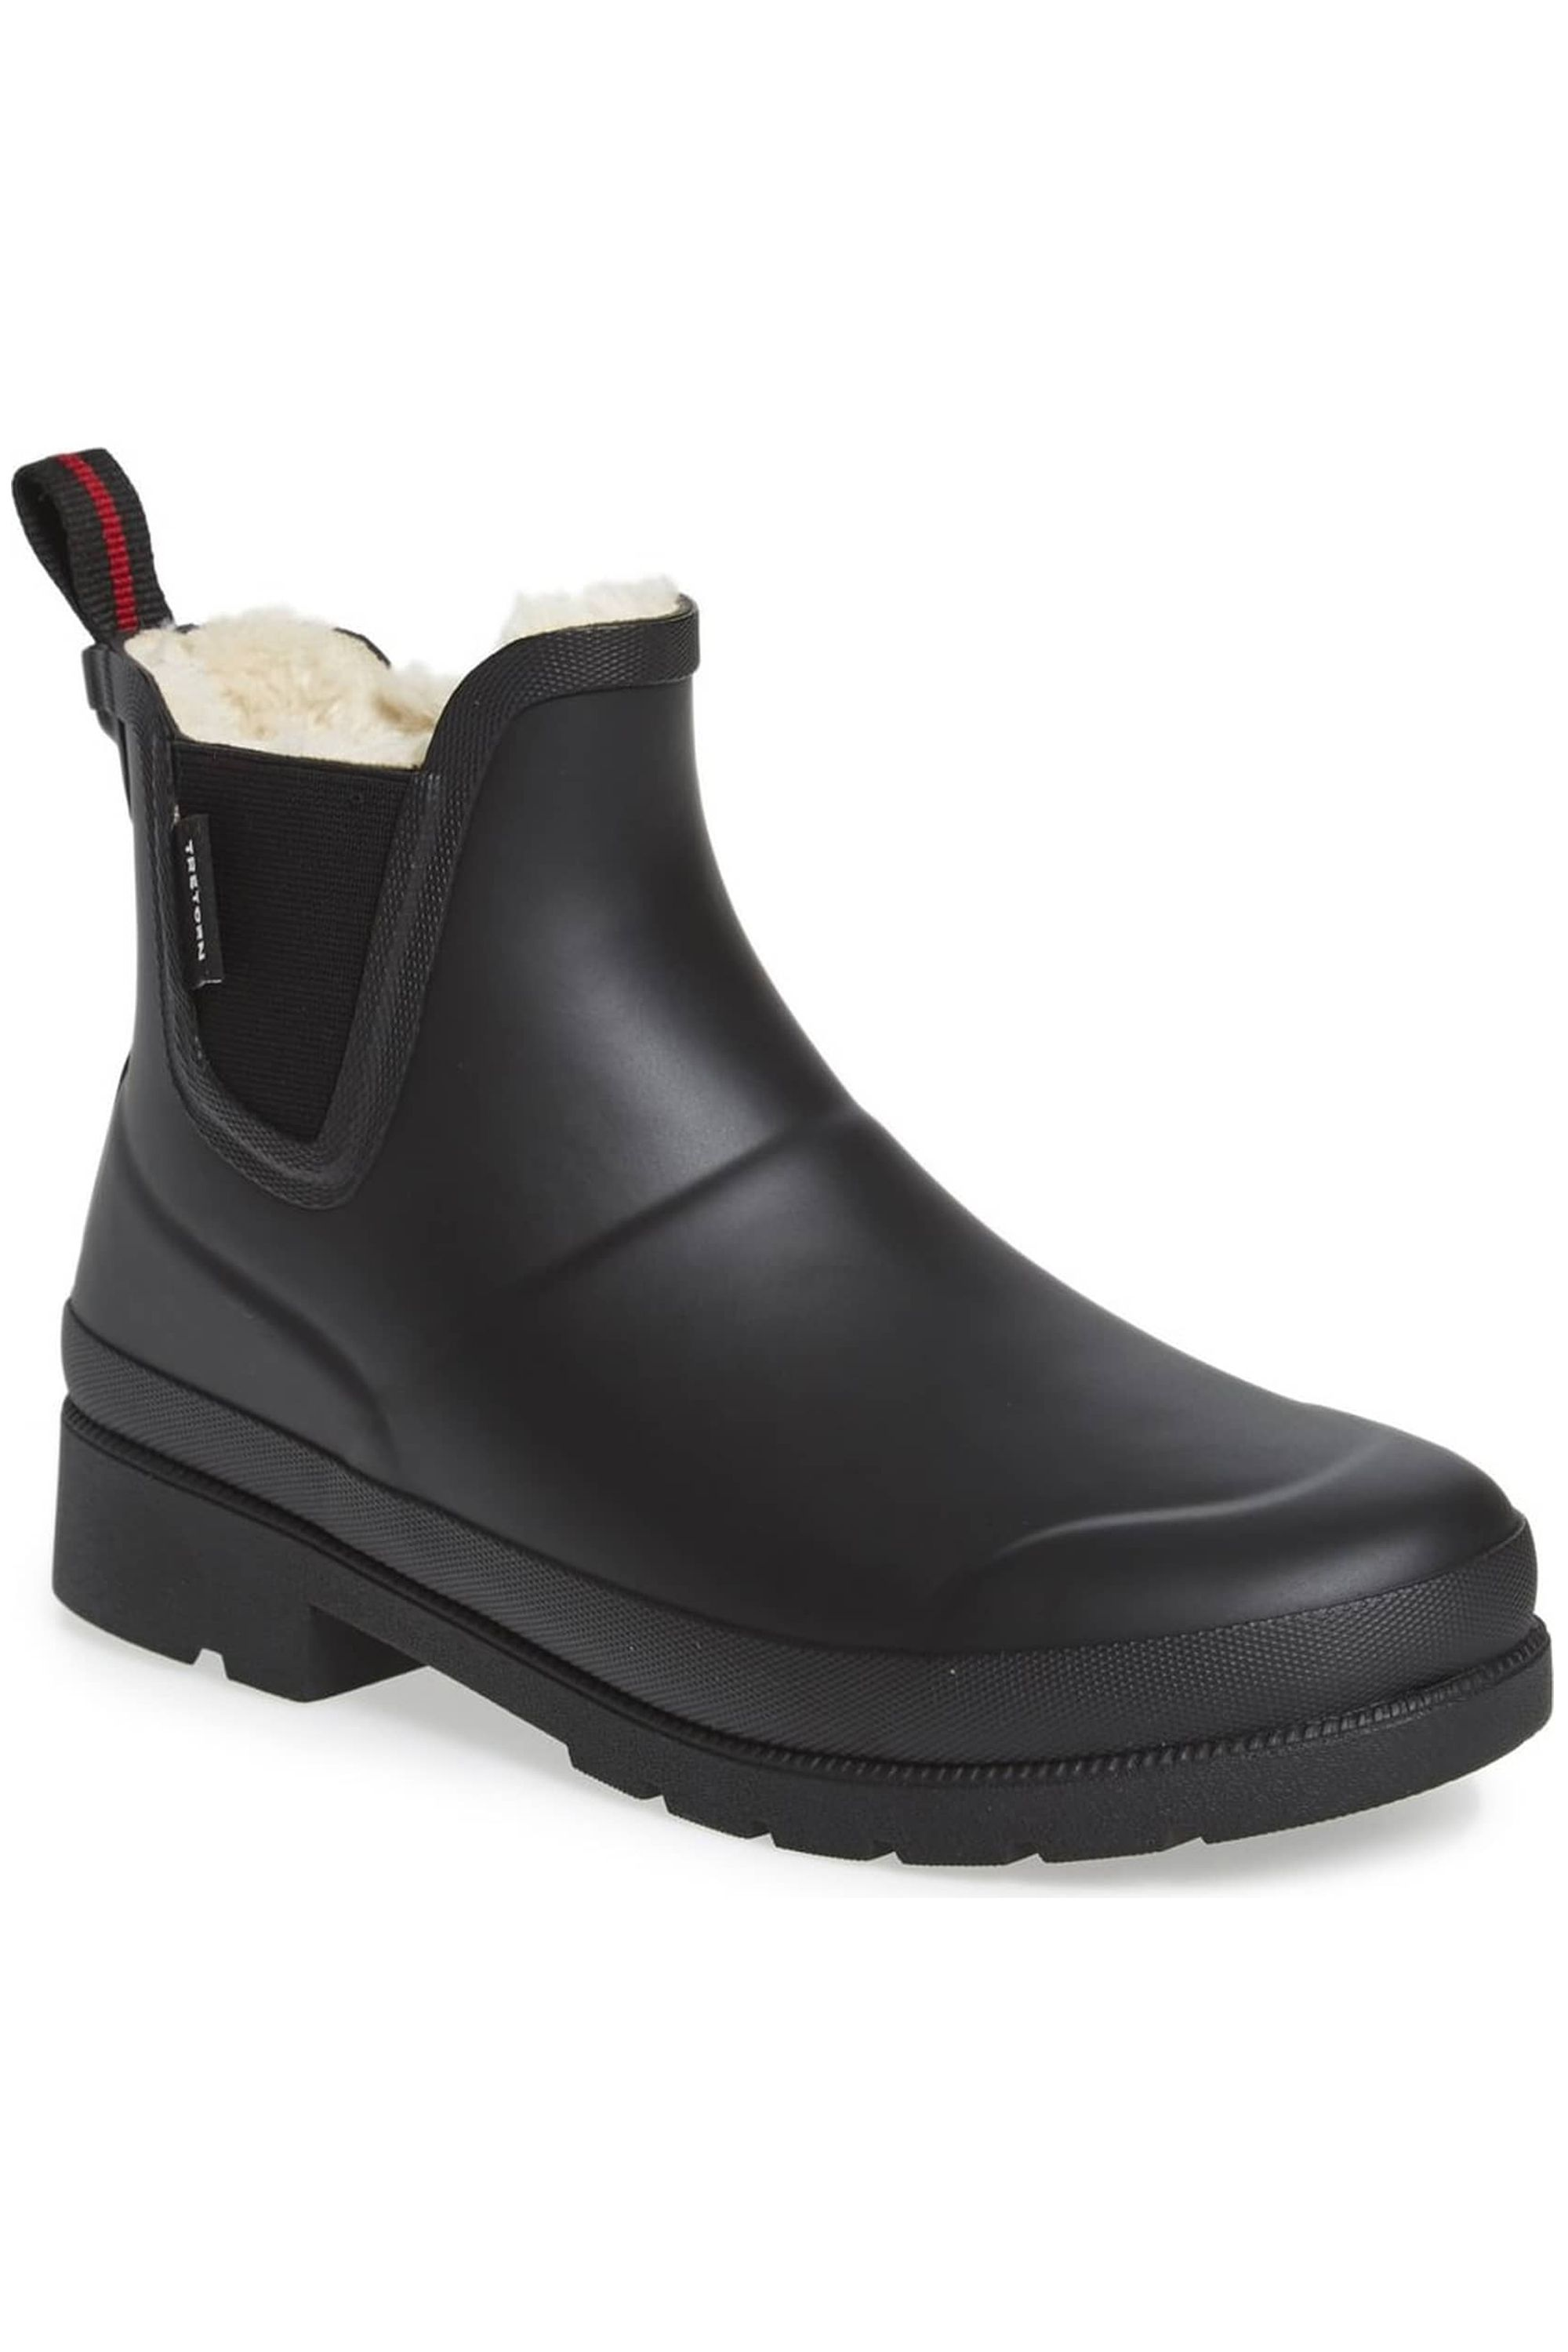 85a961dd4685 I Went on a Search for the Perfect Warm Winter Boot So You Don t Have To